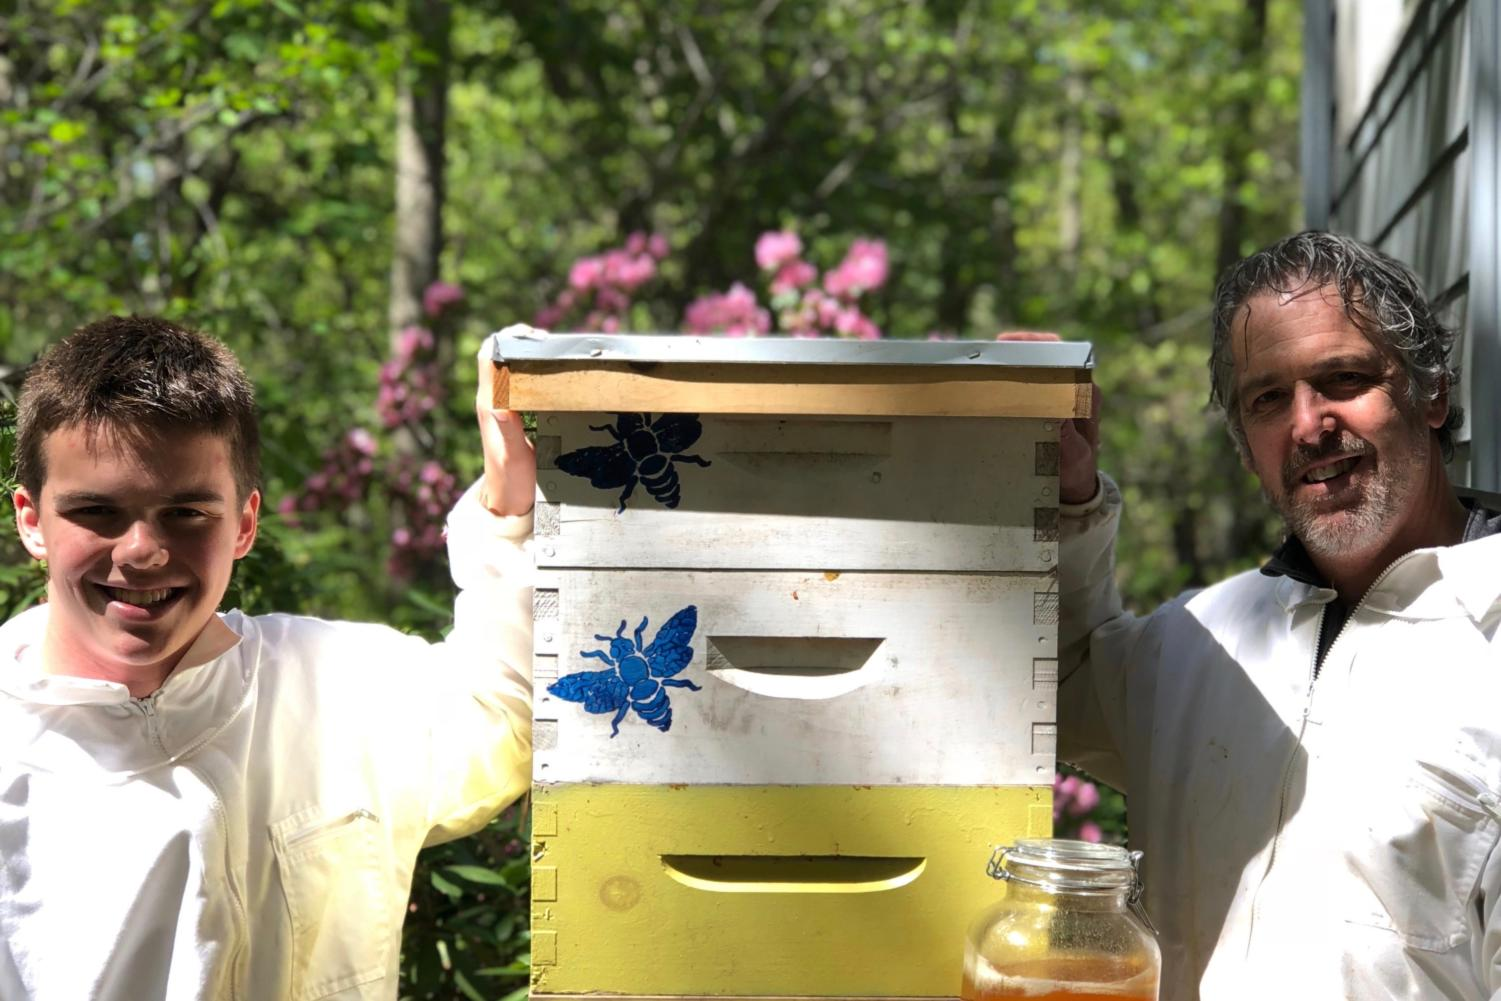 WHS sophomore Jay Provost, along with his father Bob, have not only taken up the hobby of beekeeping, but they have turned it into their own business.